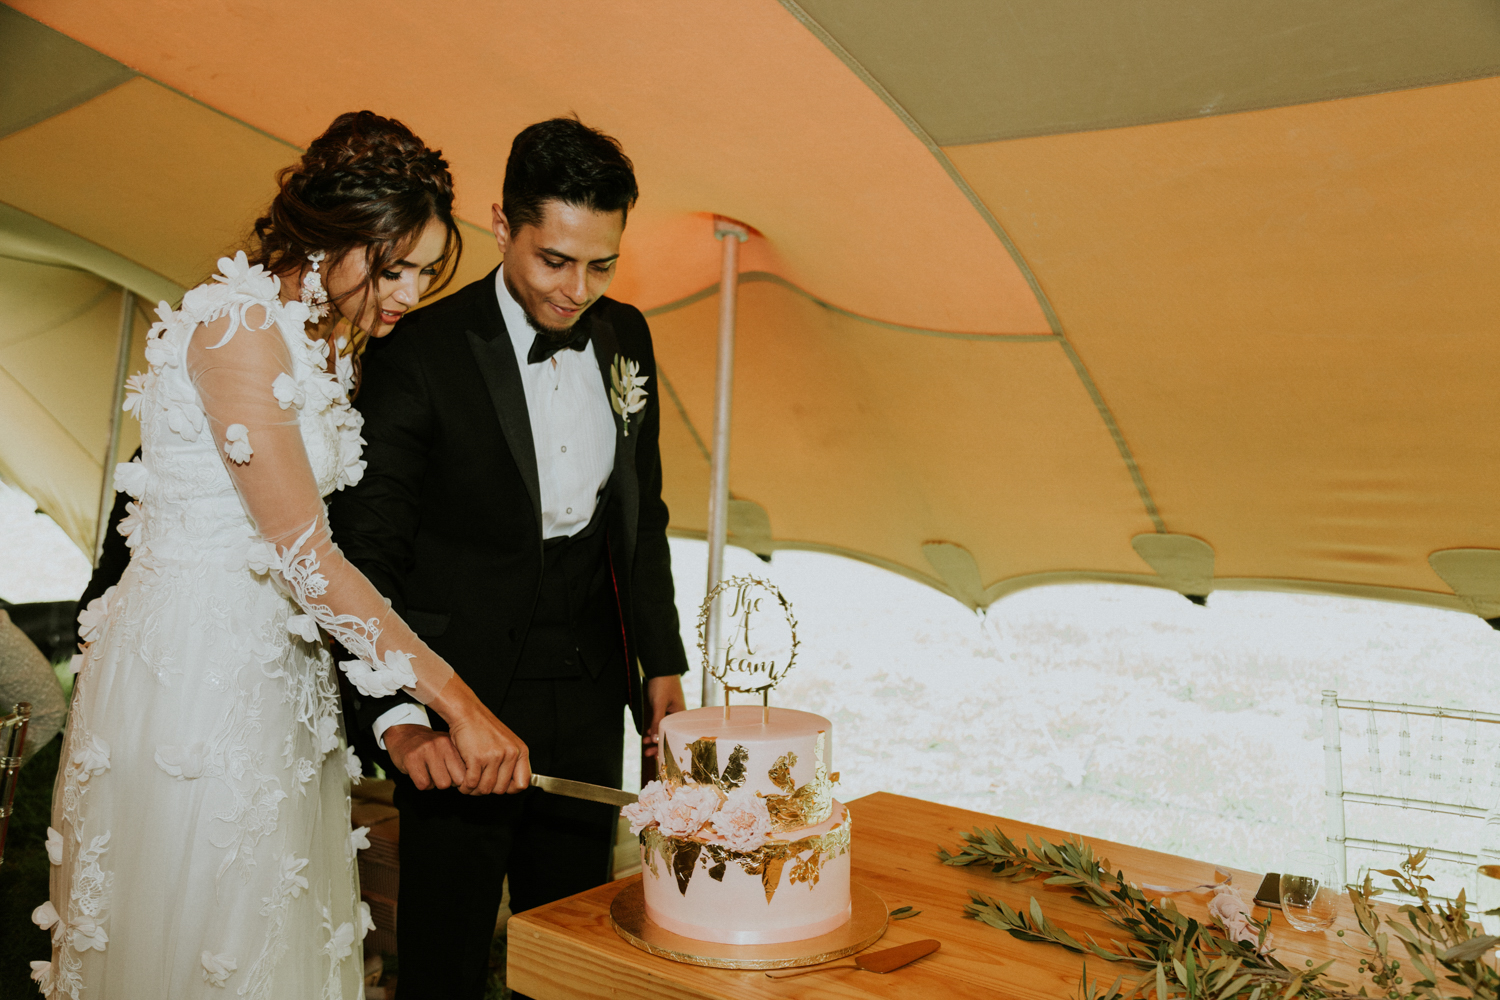 Forest Wedding Cape Town - Bianca Asher Photography-41.jpg